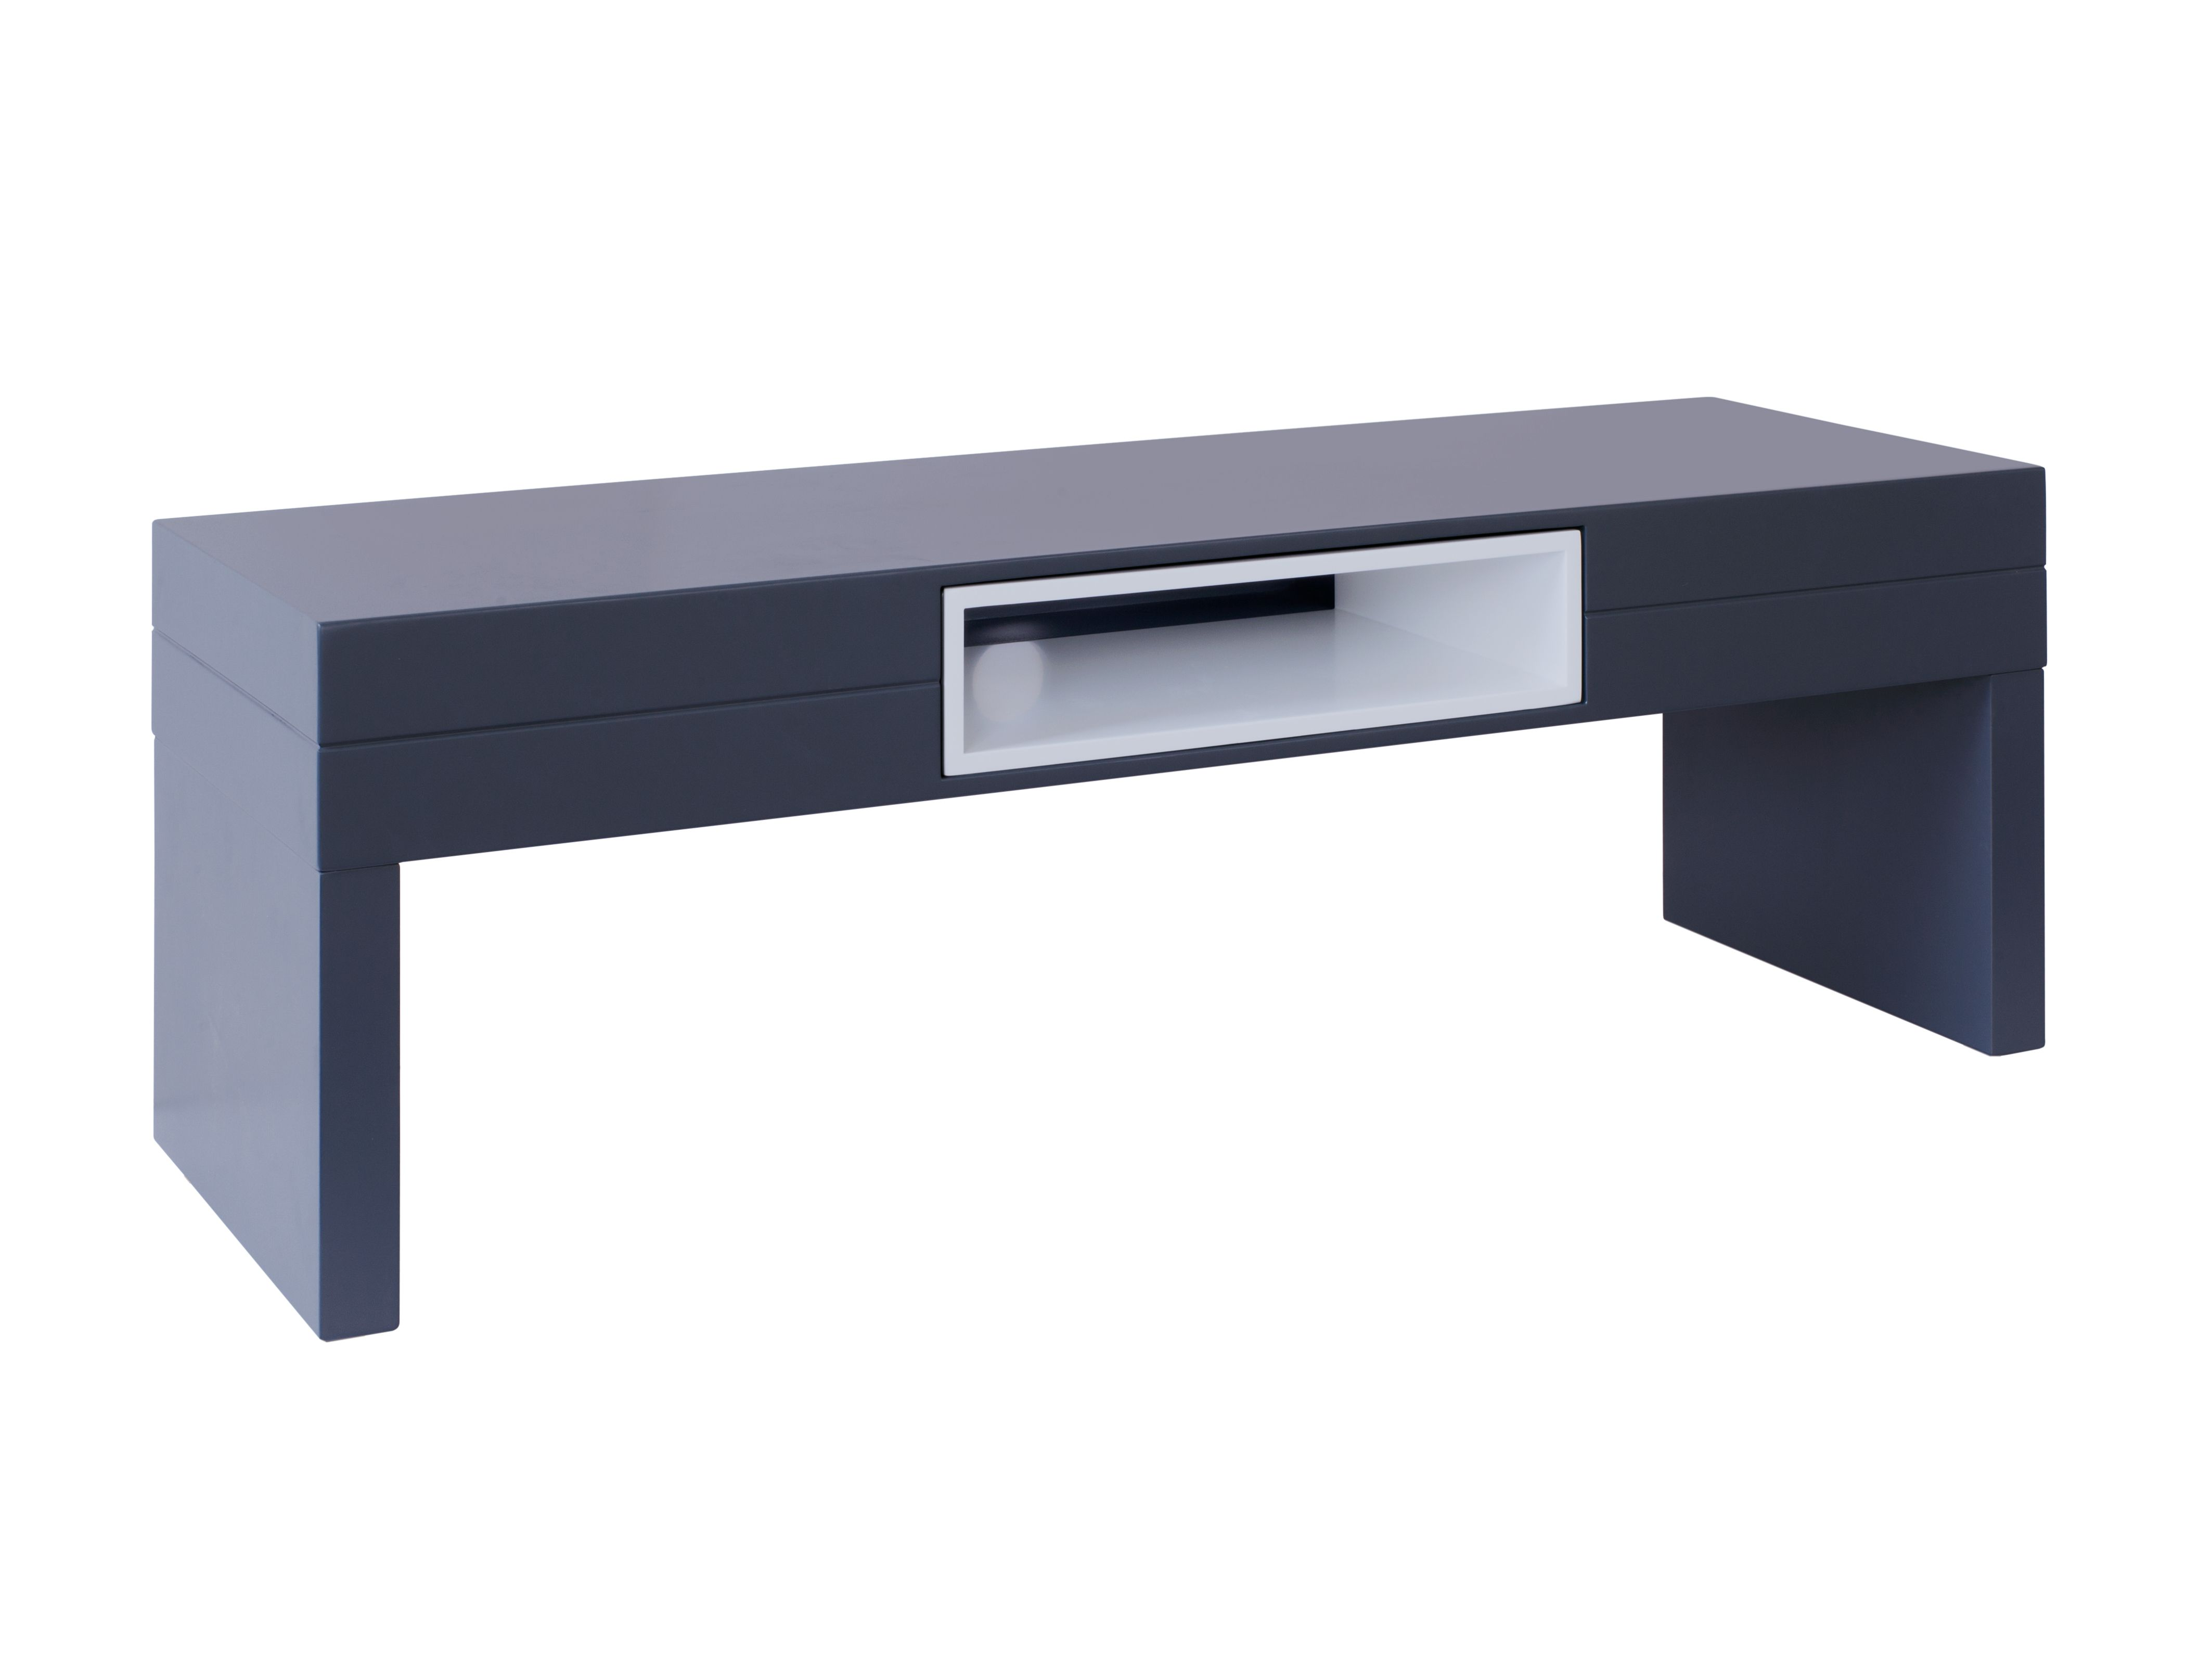 Low Tv Table Savoye Graphite With White Accent Collection From